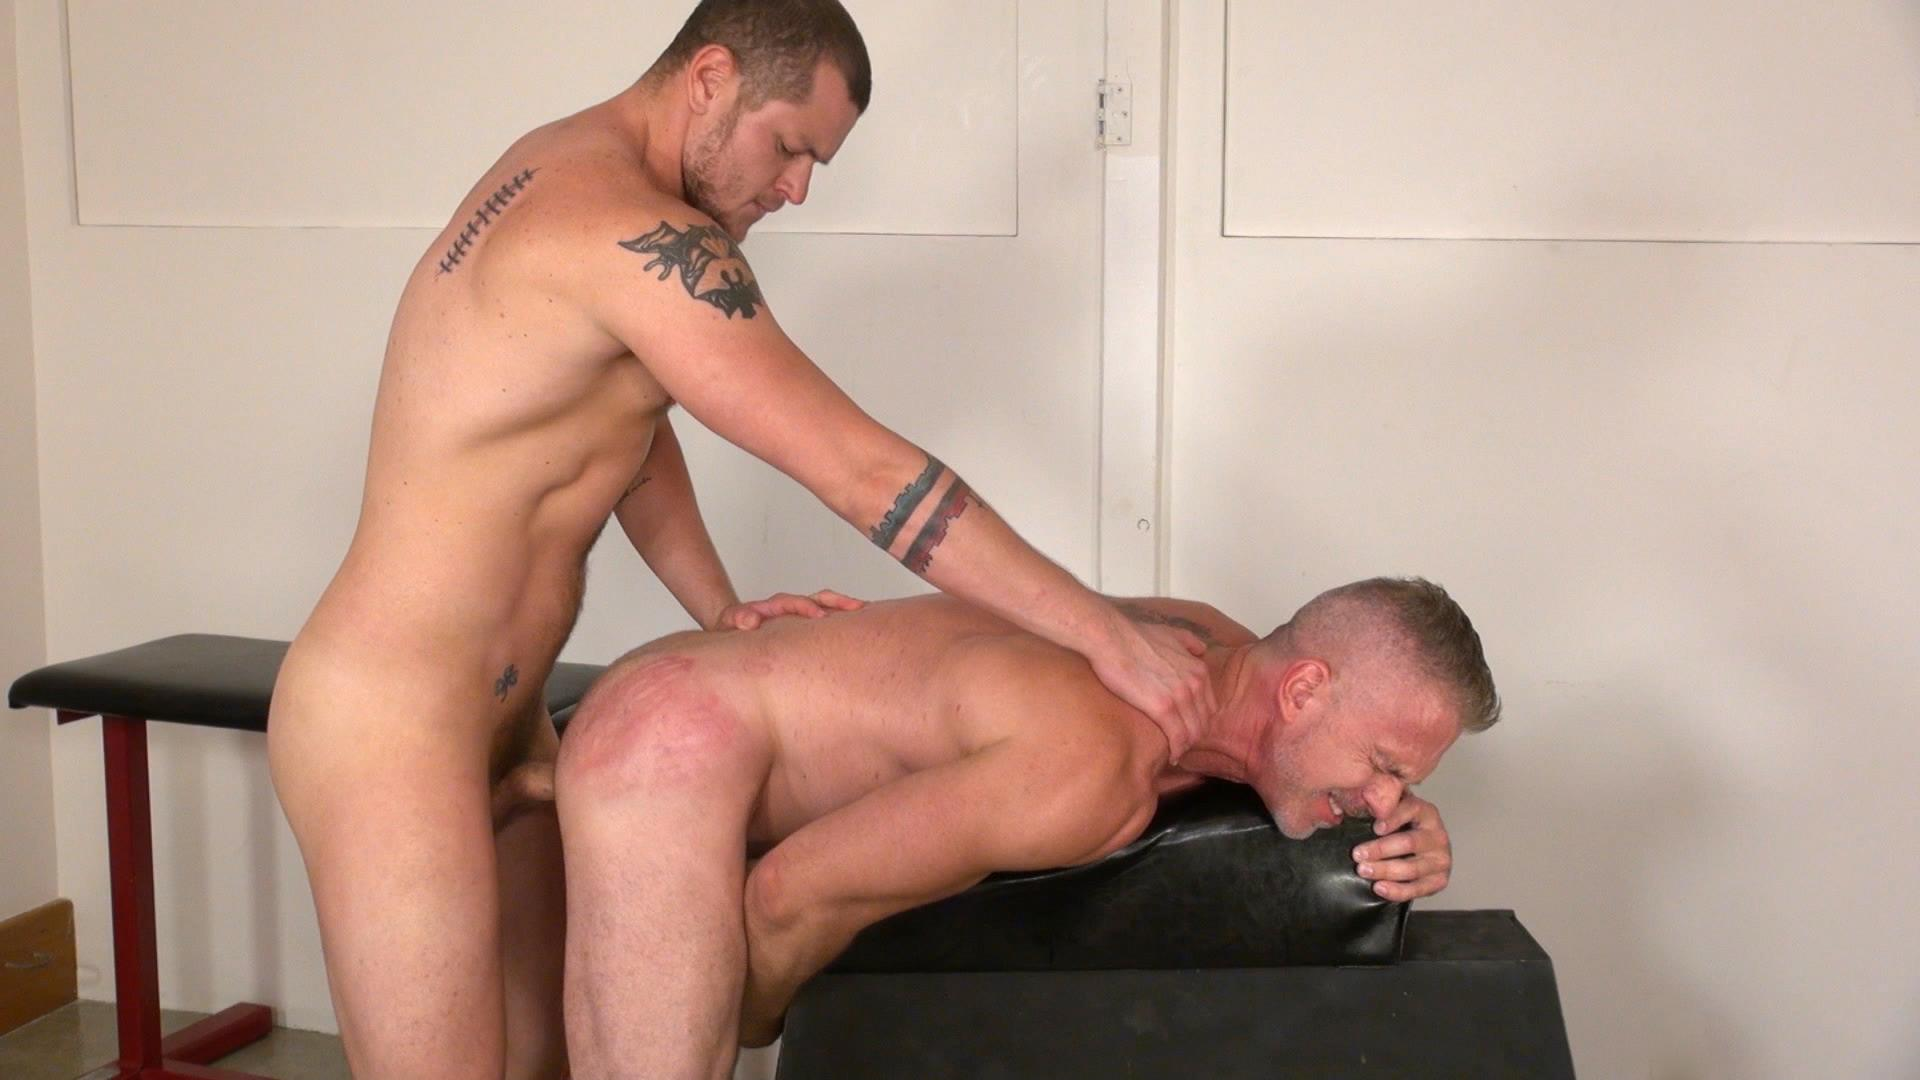 Raw and Rough Sam Dixon and Blue Bailey Daddy And Boy Flip Flip Bareback Fucking Amateur Gay Porn 10 Blue Bailey Flip Flop Barebacking With A Hung Daddy